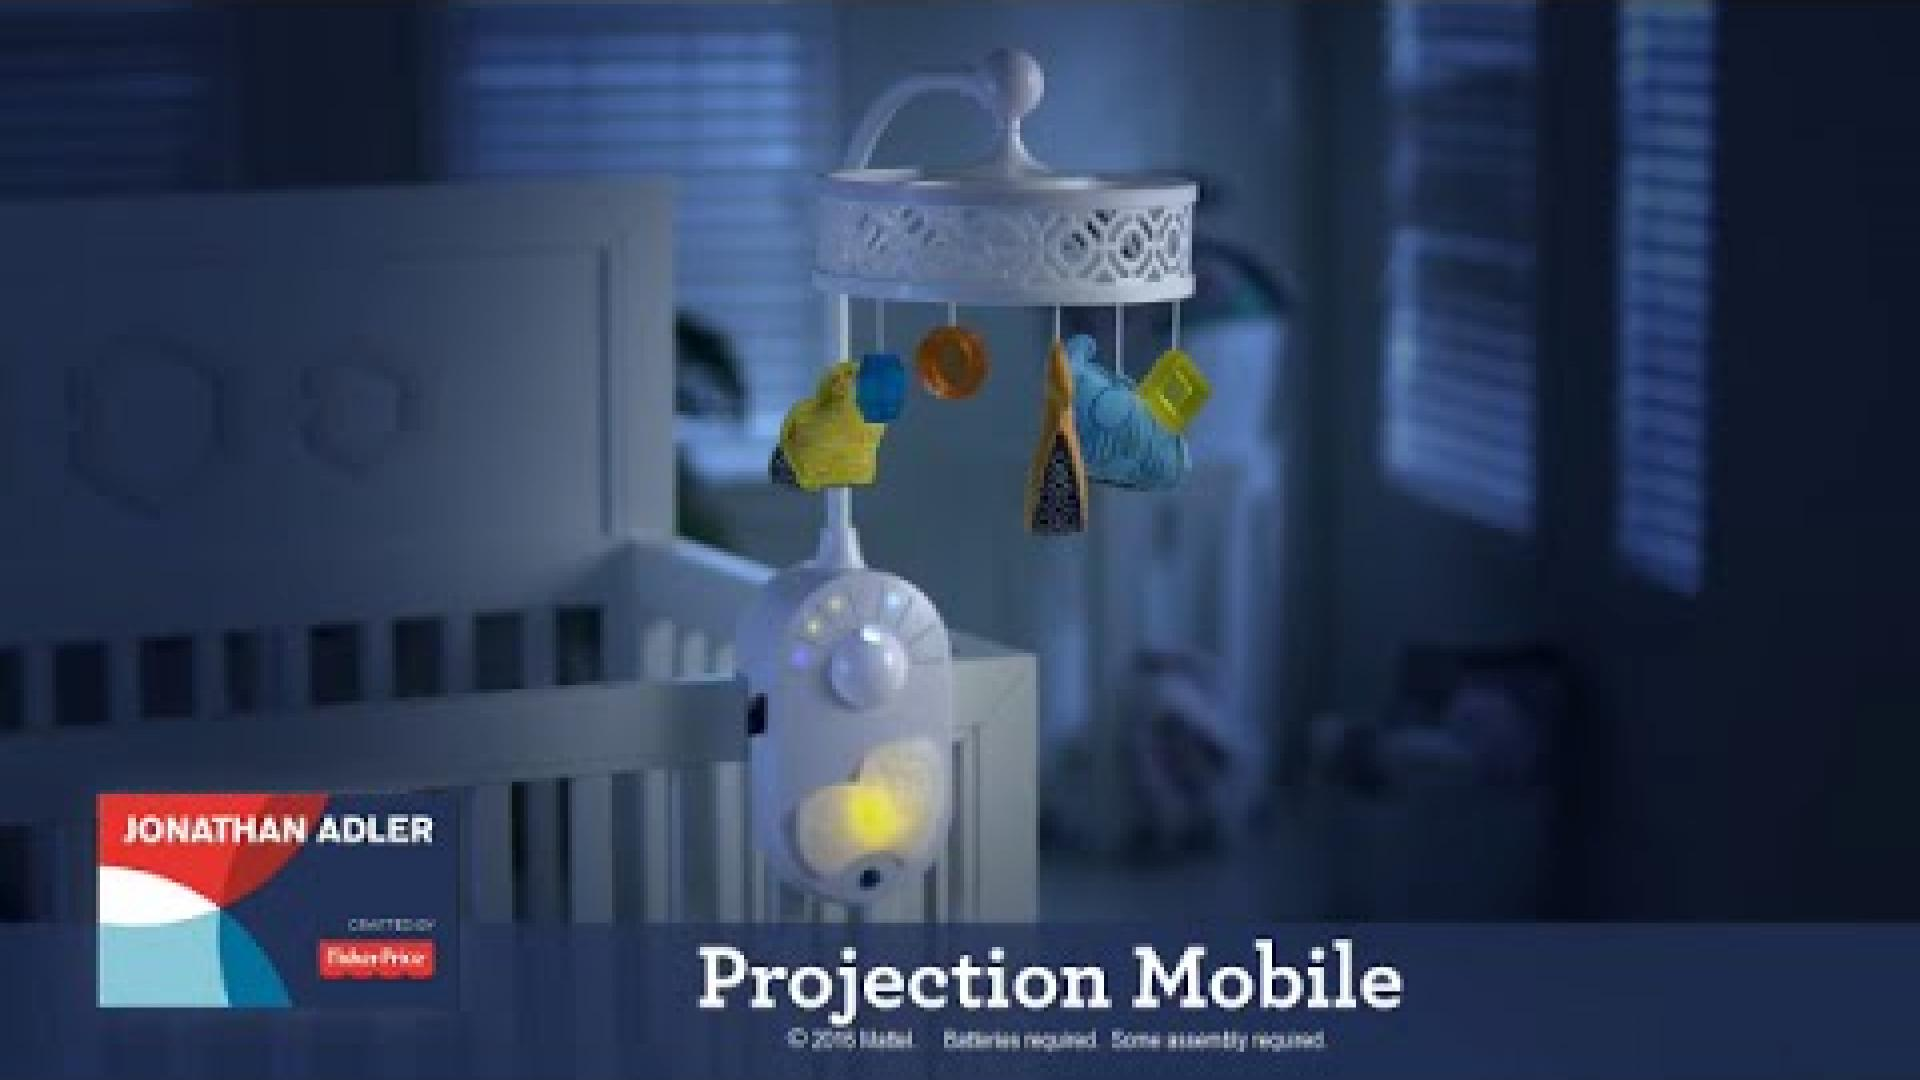 Projection Mobile designed by Jonathan Adler | Fisher-Price